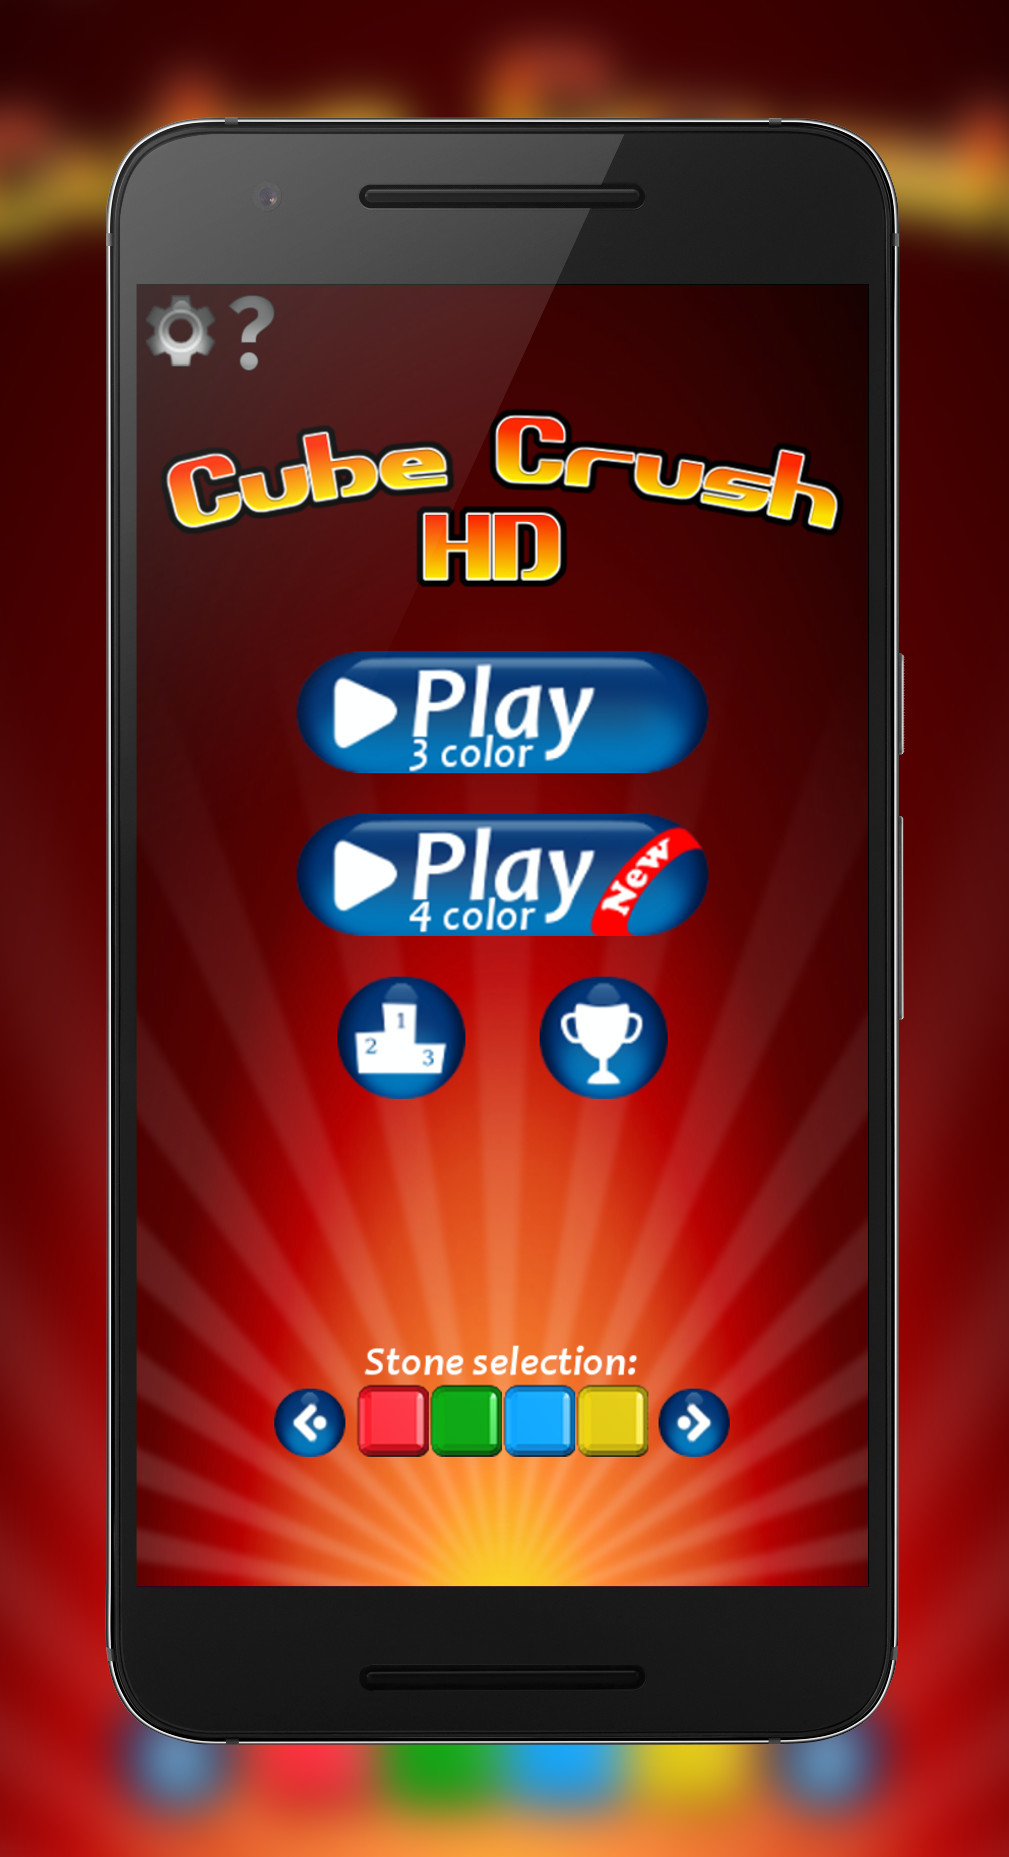 Android] Cube Crush HD - Showcase - OpenFL Community